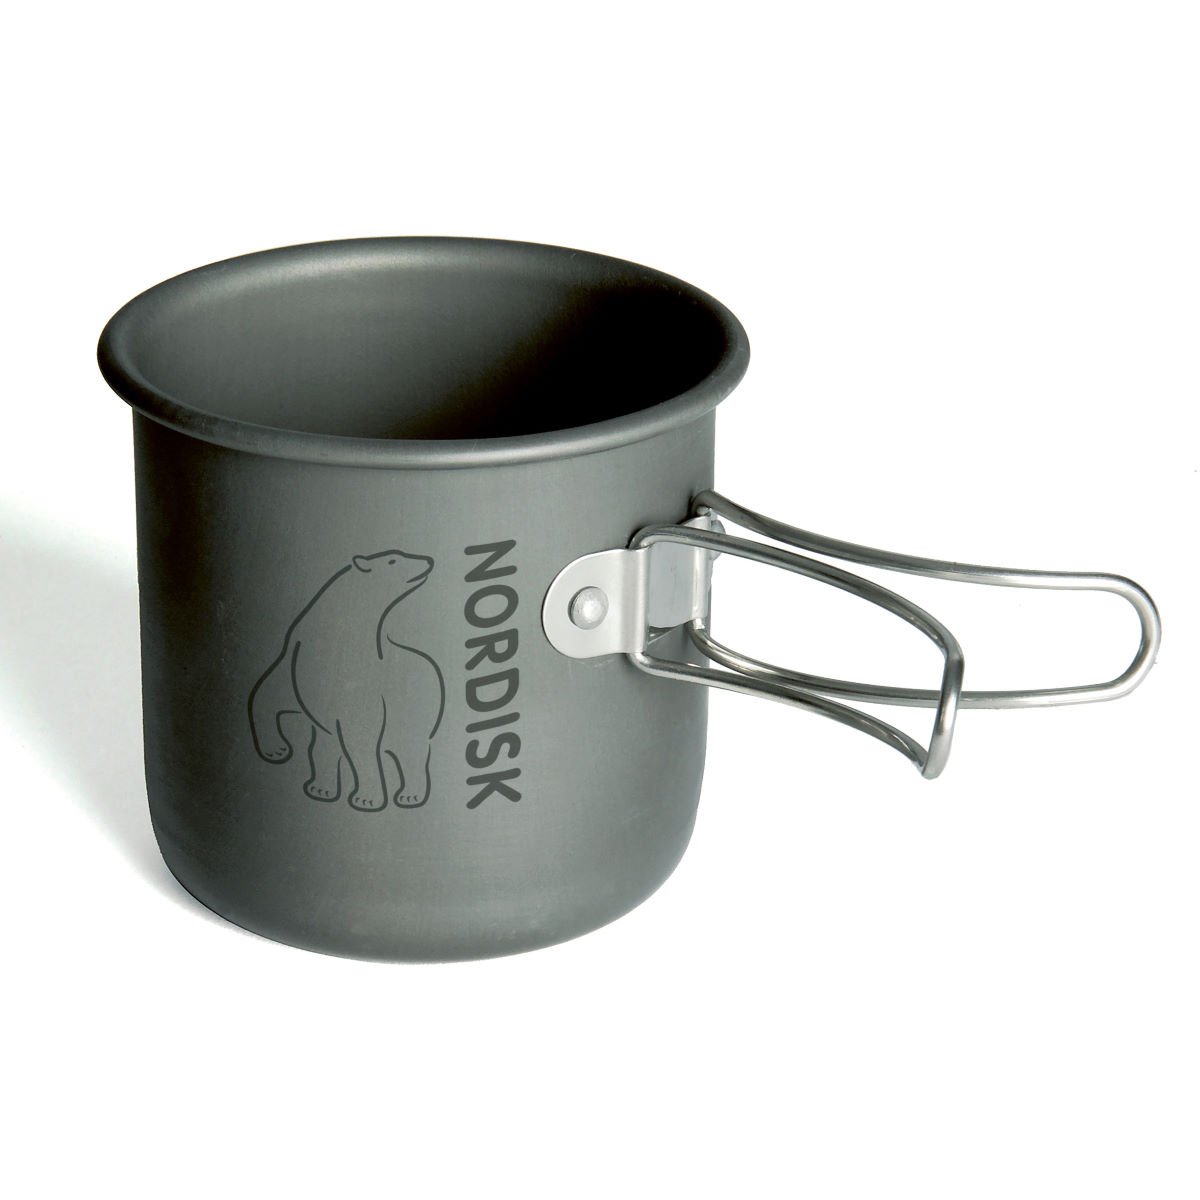 Nordisk Aluminium Mug (400ml)   Kitchen Equipment